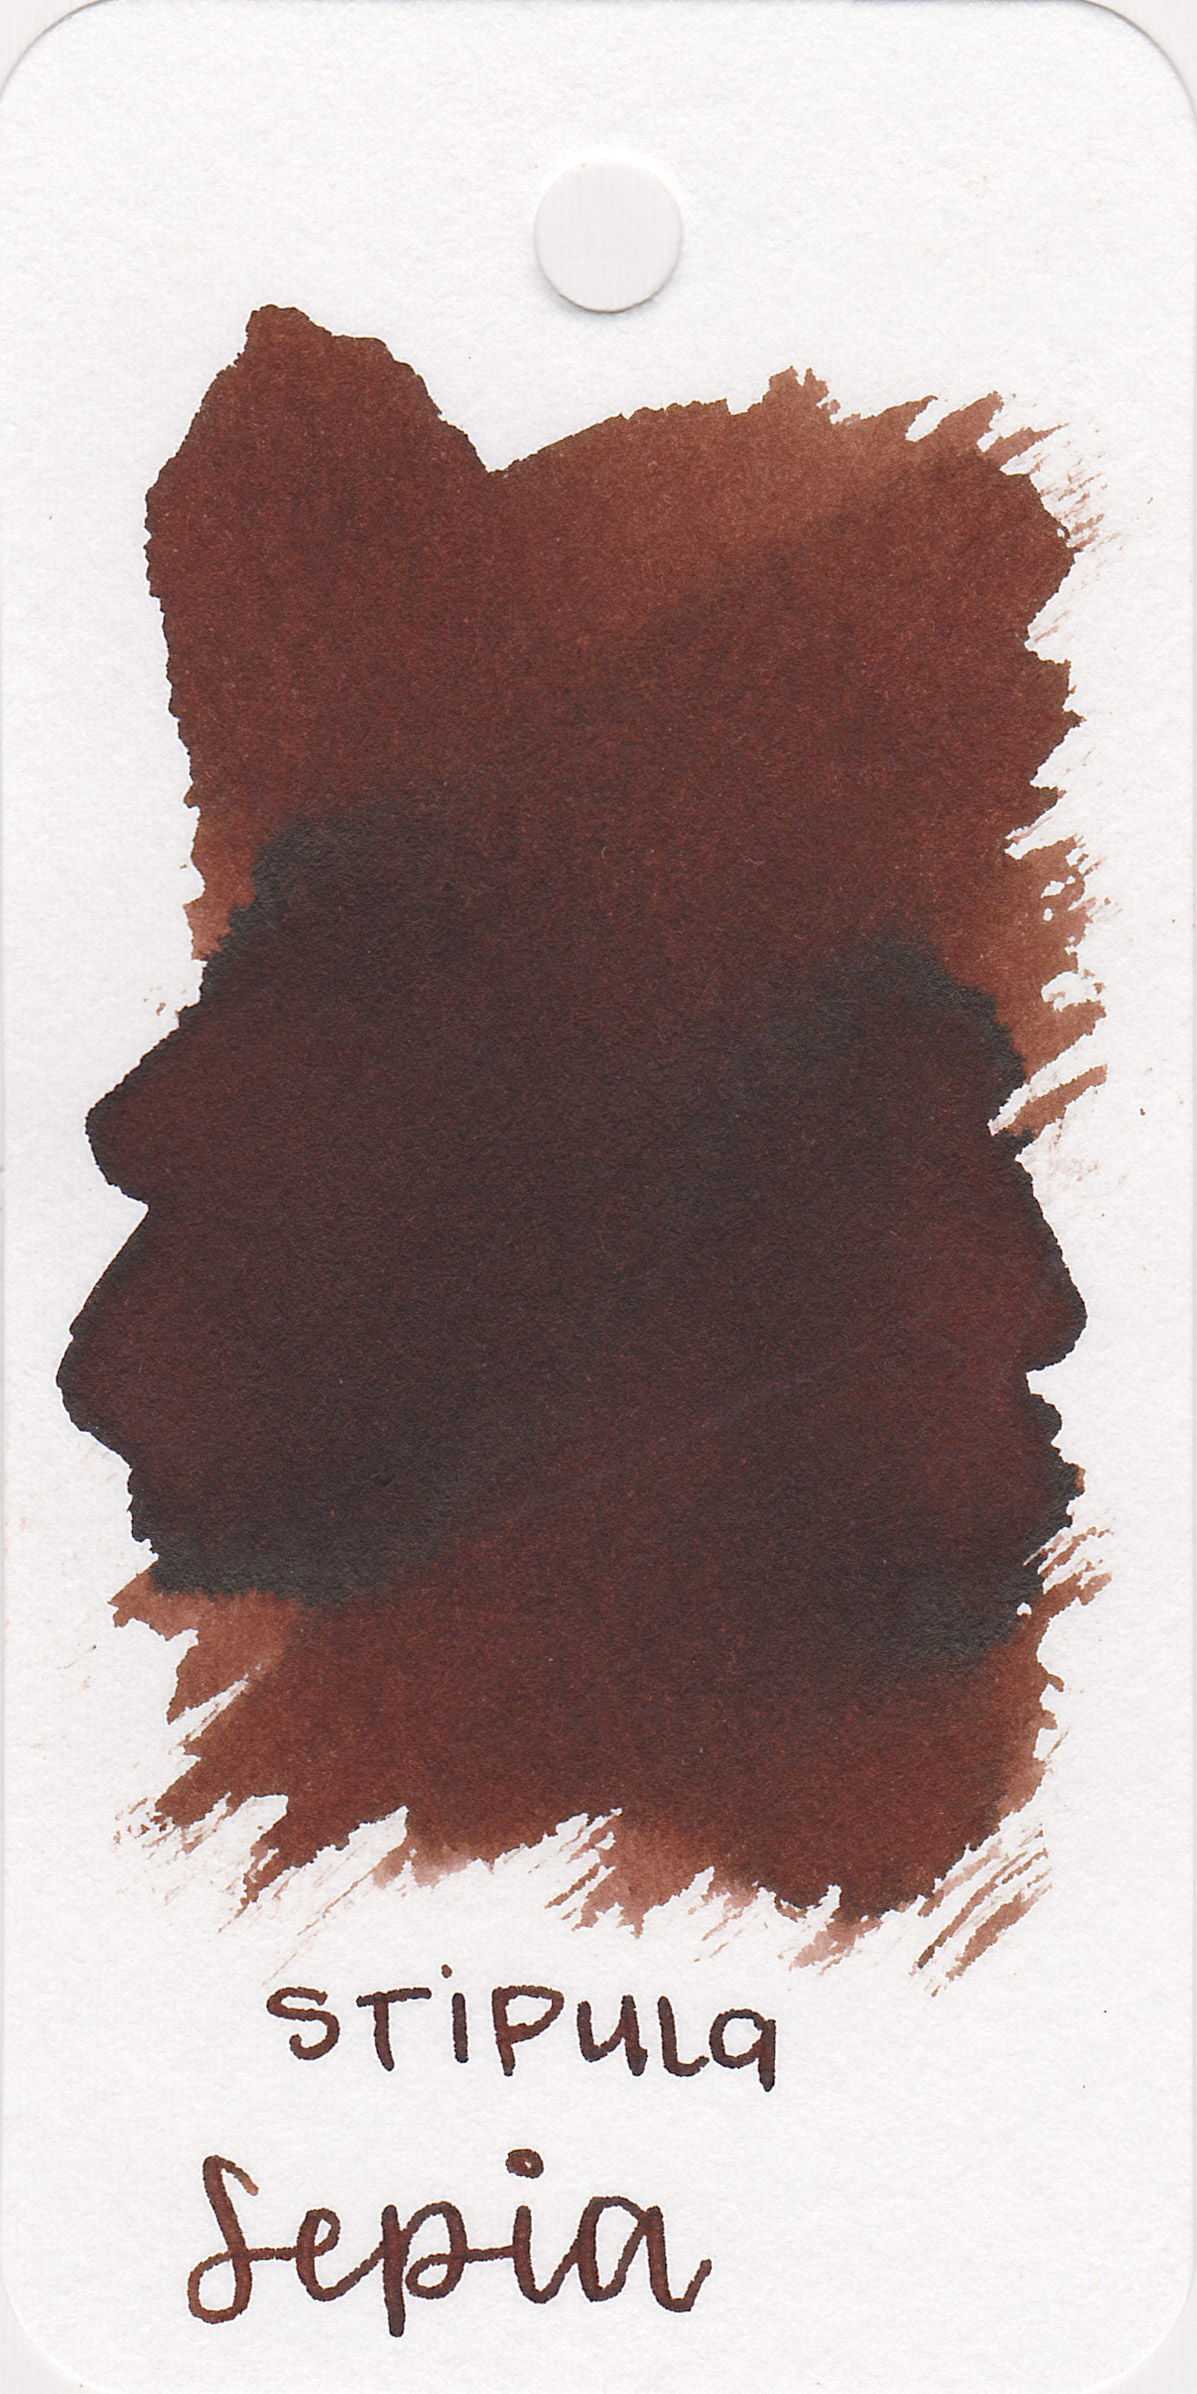 The color: - Sepia is a medium, warm toned brown. It doesn't quite look sepia to me, more of a warm brown.